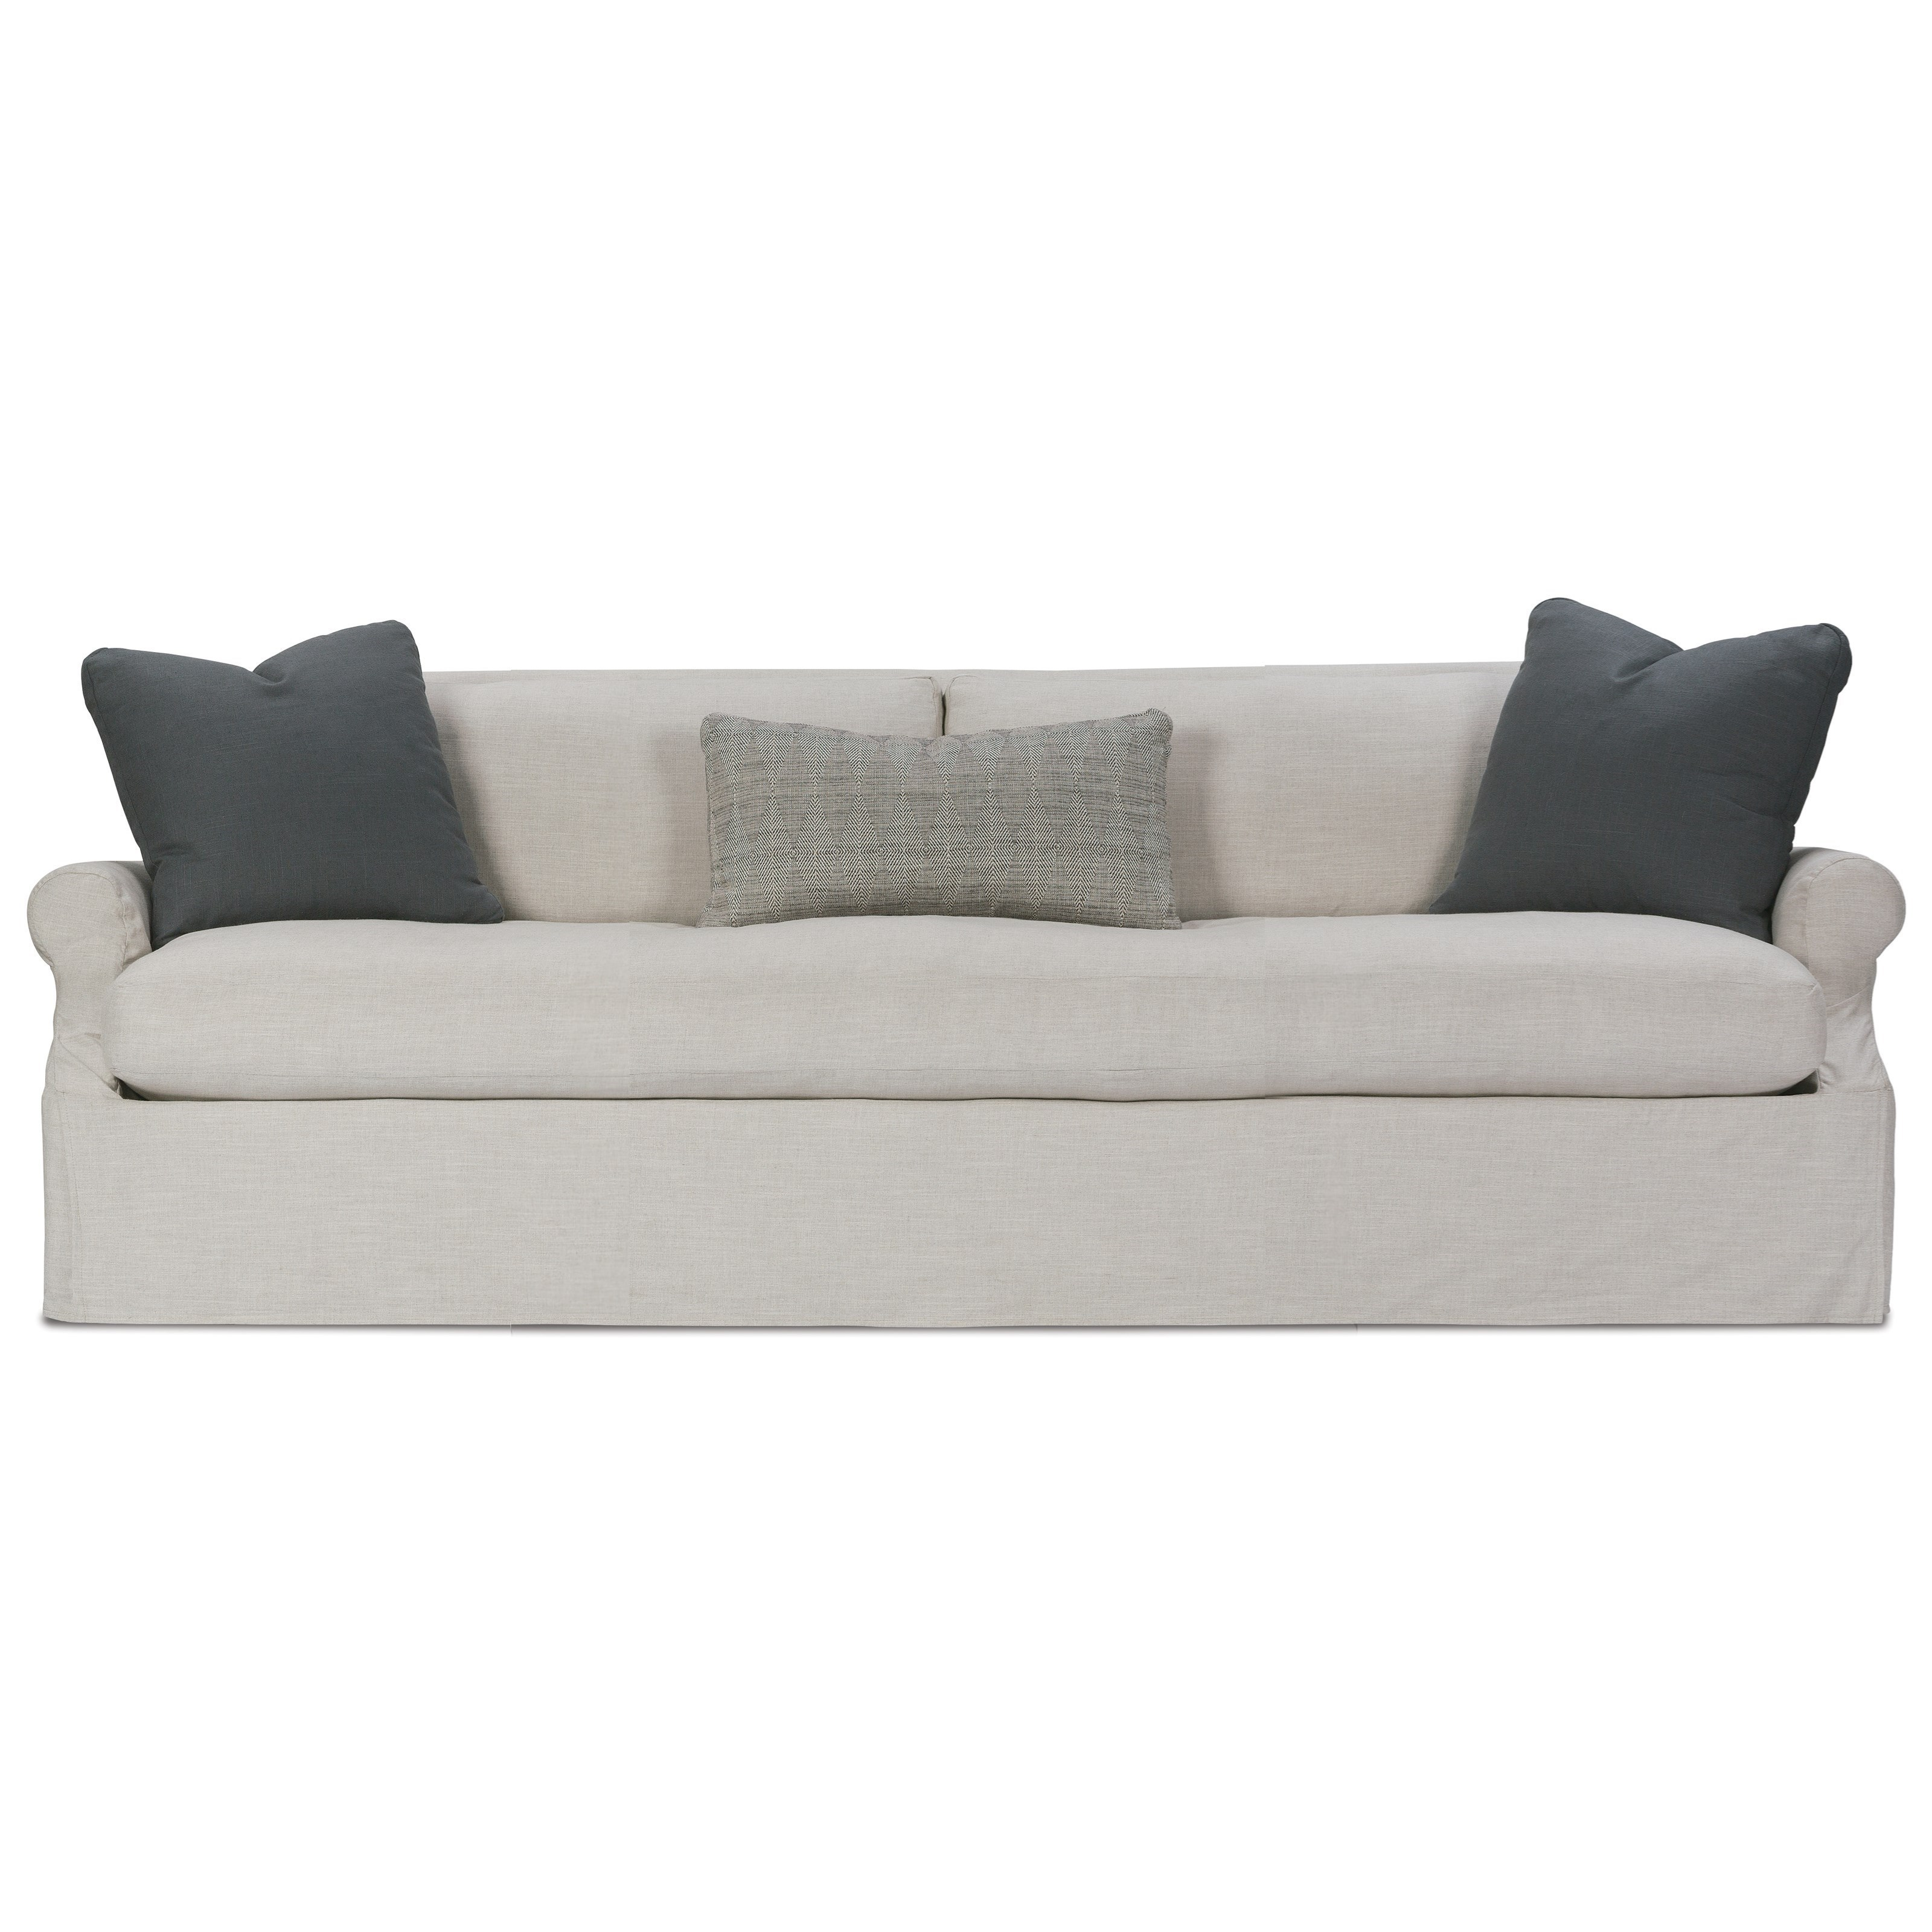 RB by Rowe Bristol Contemporary 85'' Sofa with Slip Cover and Bench Cushion - Belfort Furniture ...